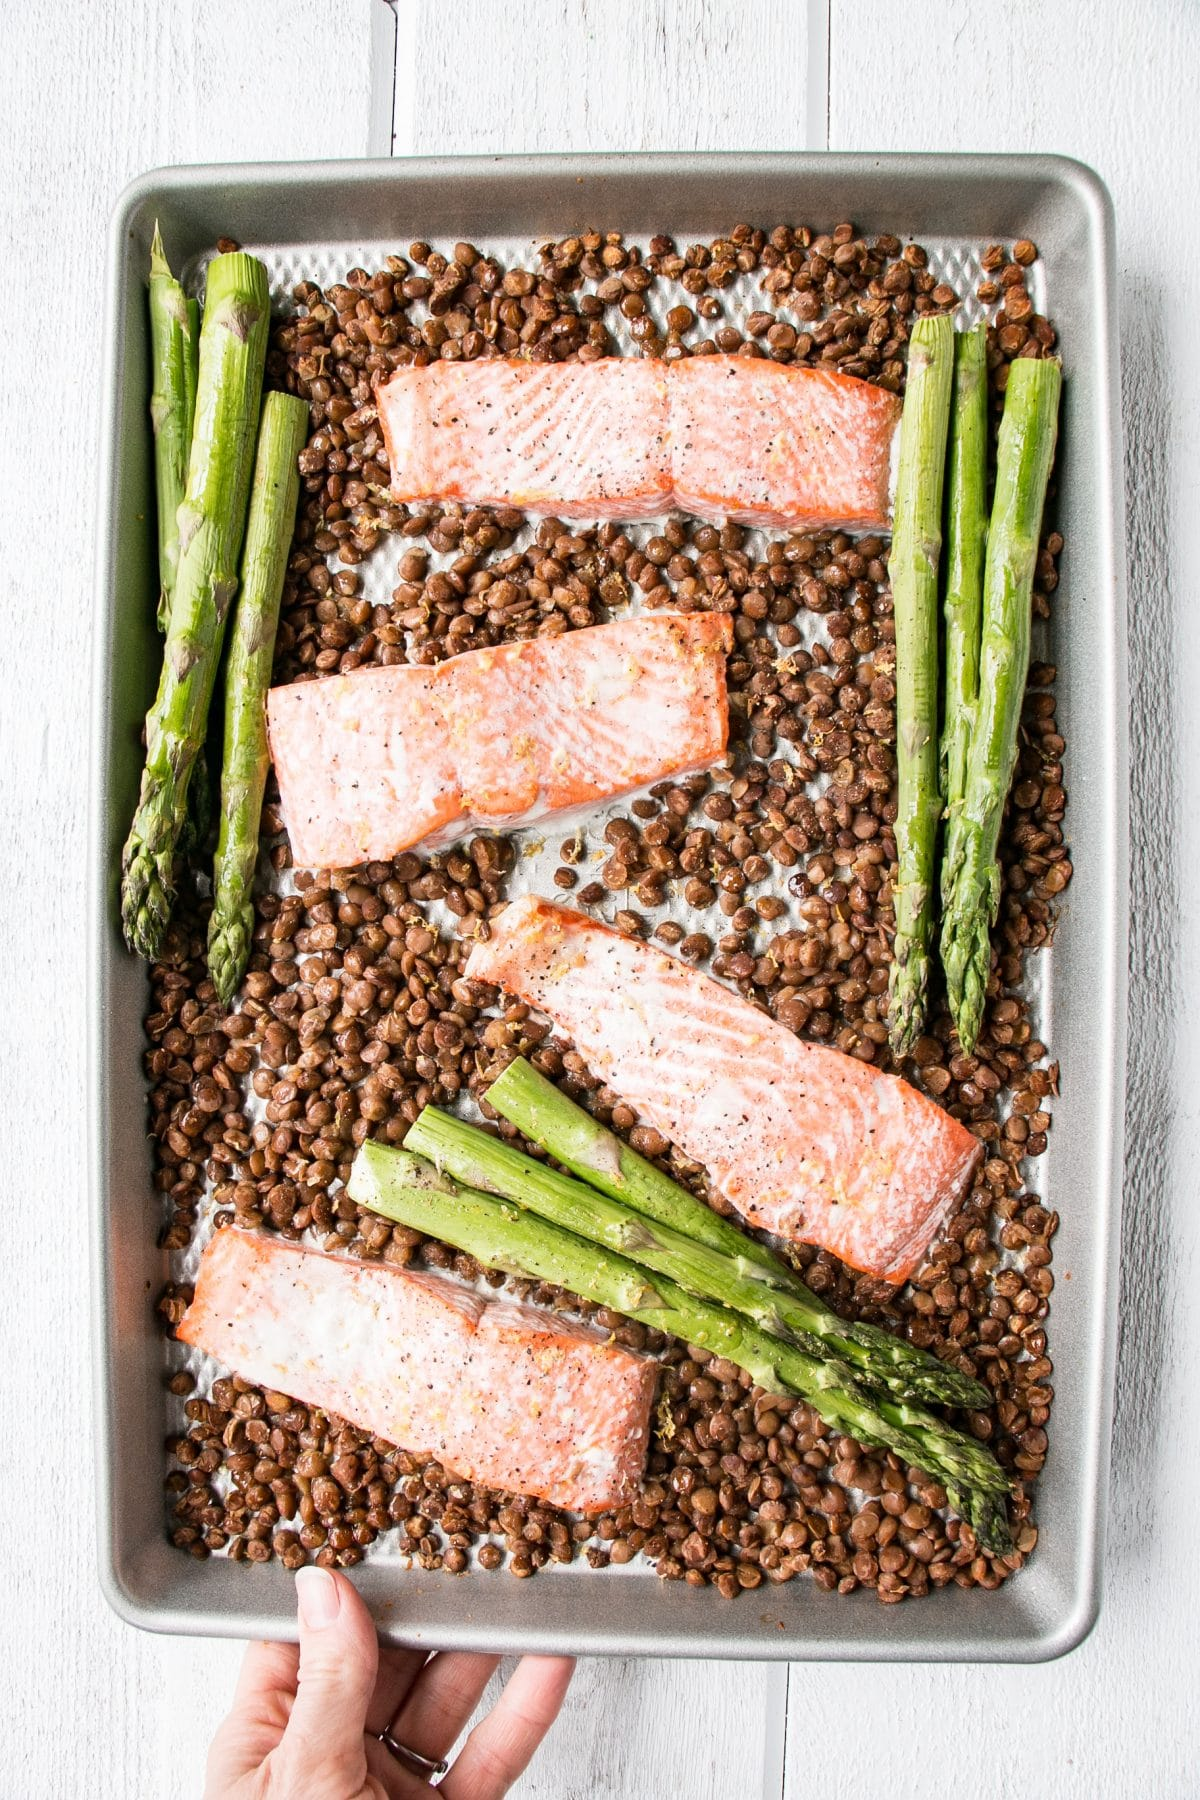 Healthy, quick, and beyond easy Sheet Pan Salmon, Lentils, and Asparagus. #LoveLentils #mealprep #healthy #GetPrepped #ad